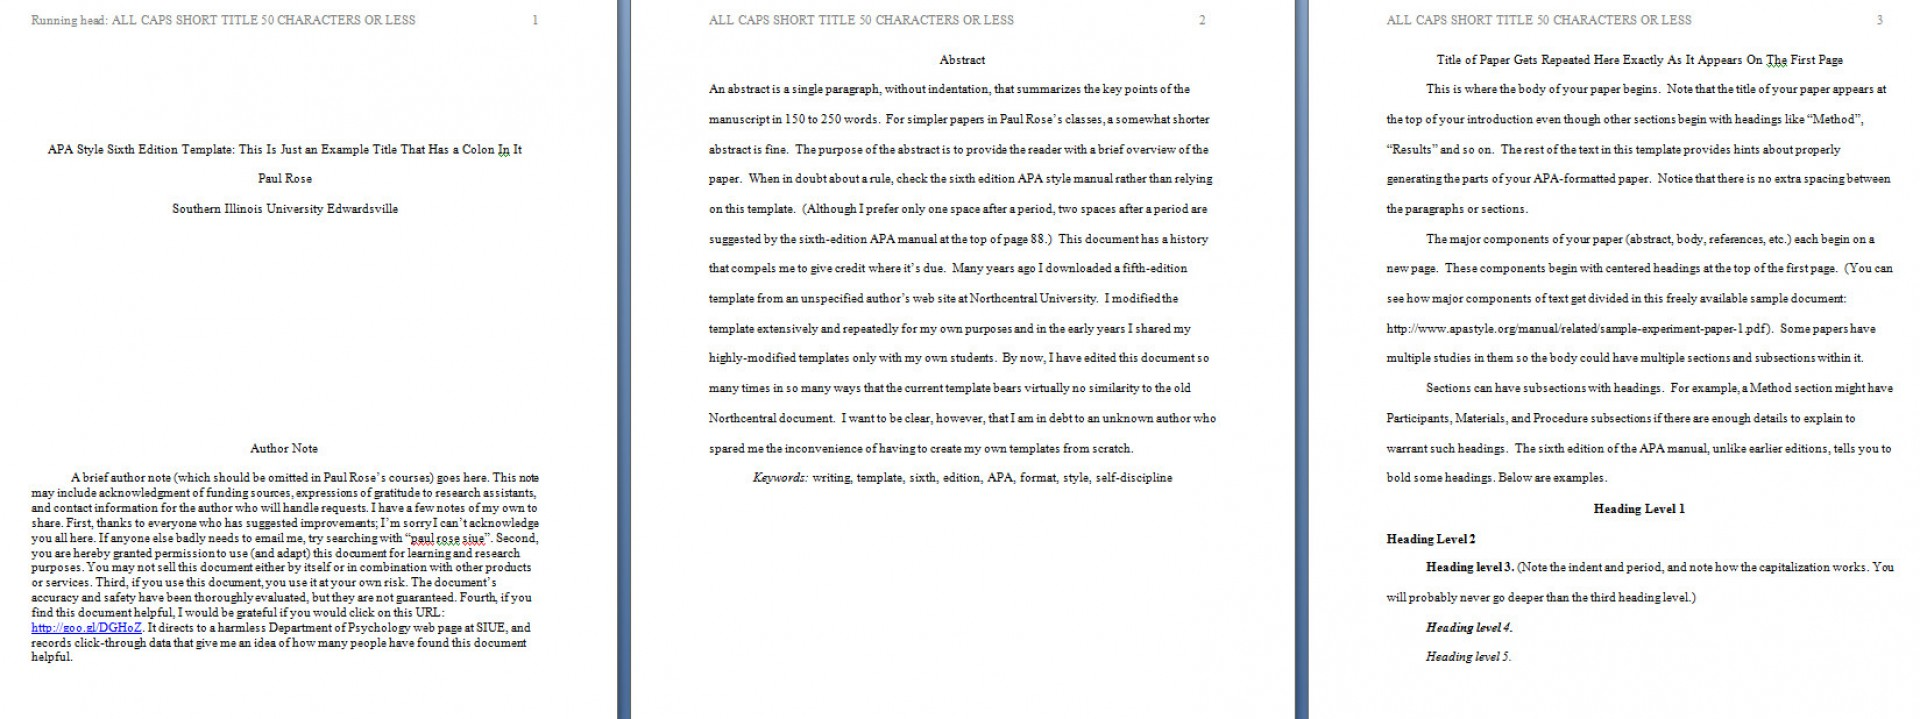 002 Apa Format Essay Template Preview Stupendous Papers Examples Word 2010 1920